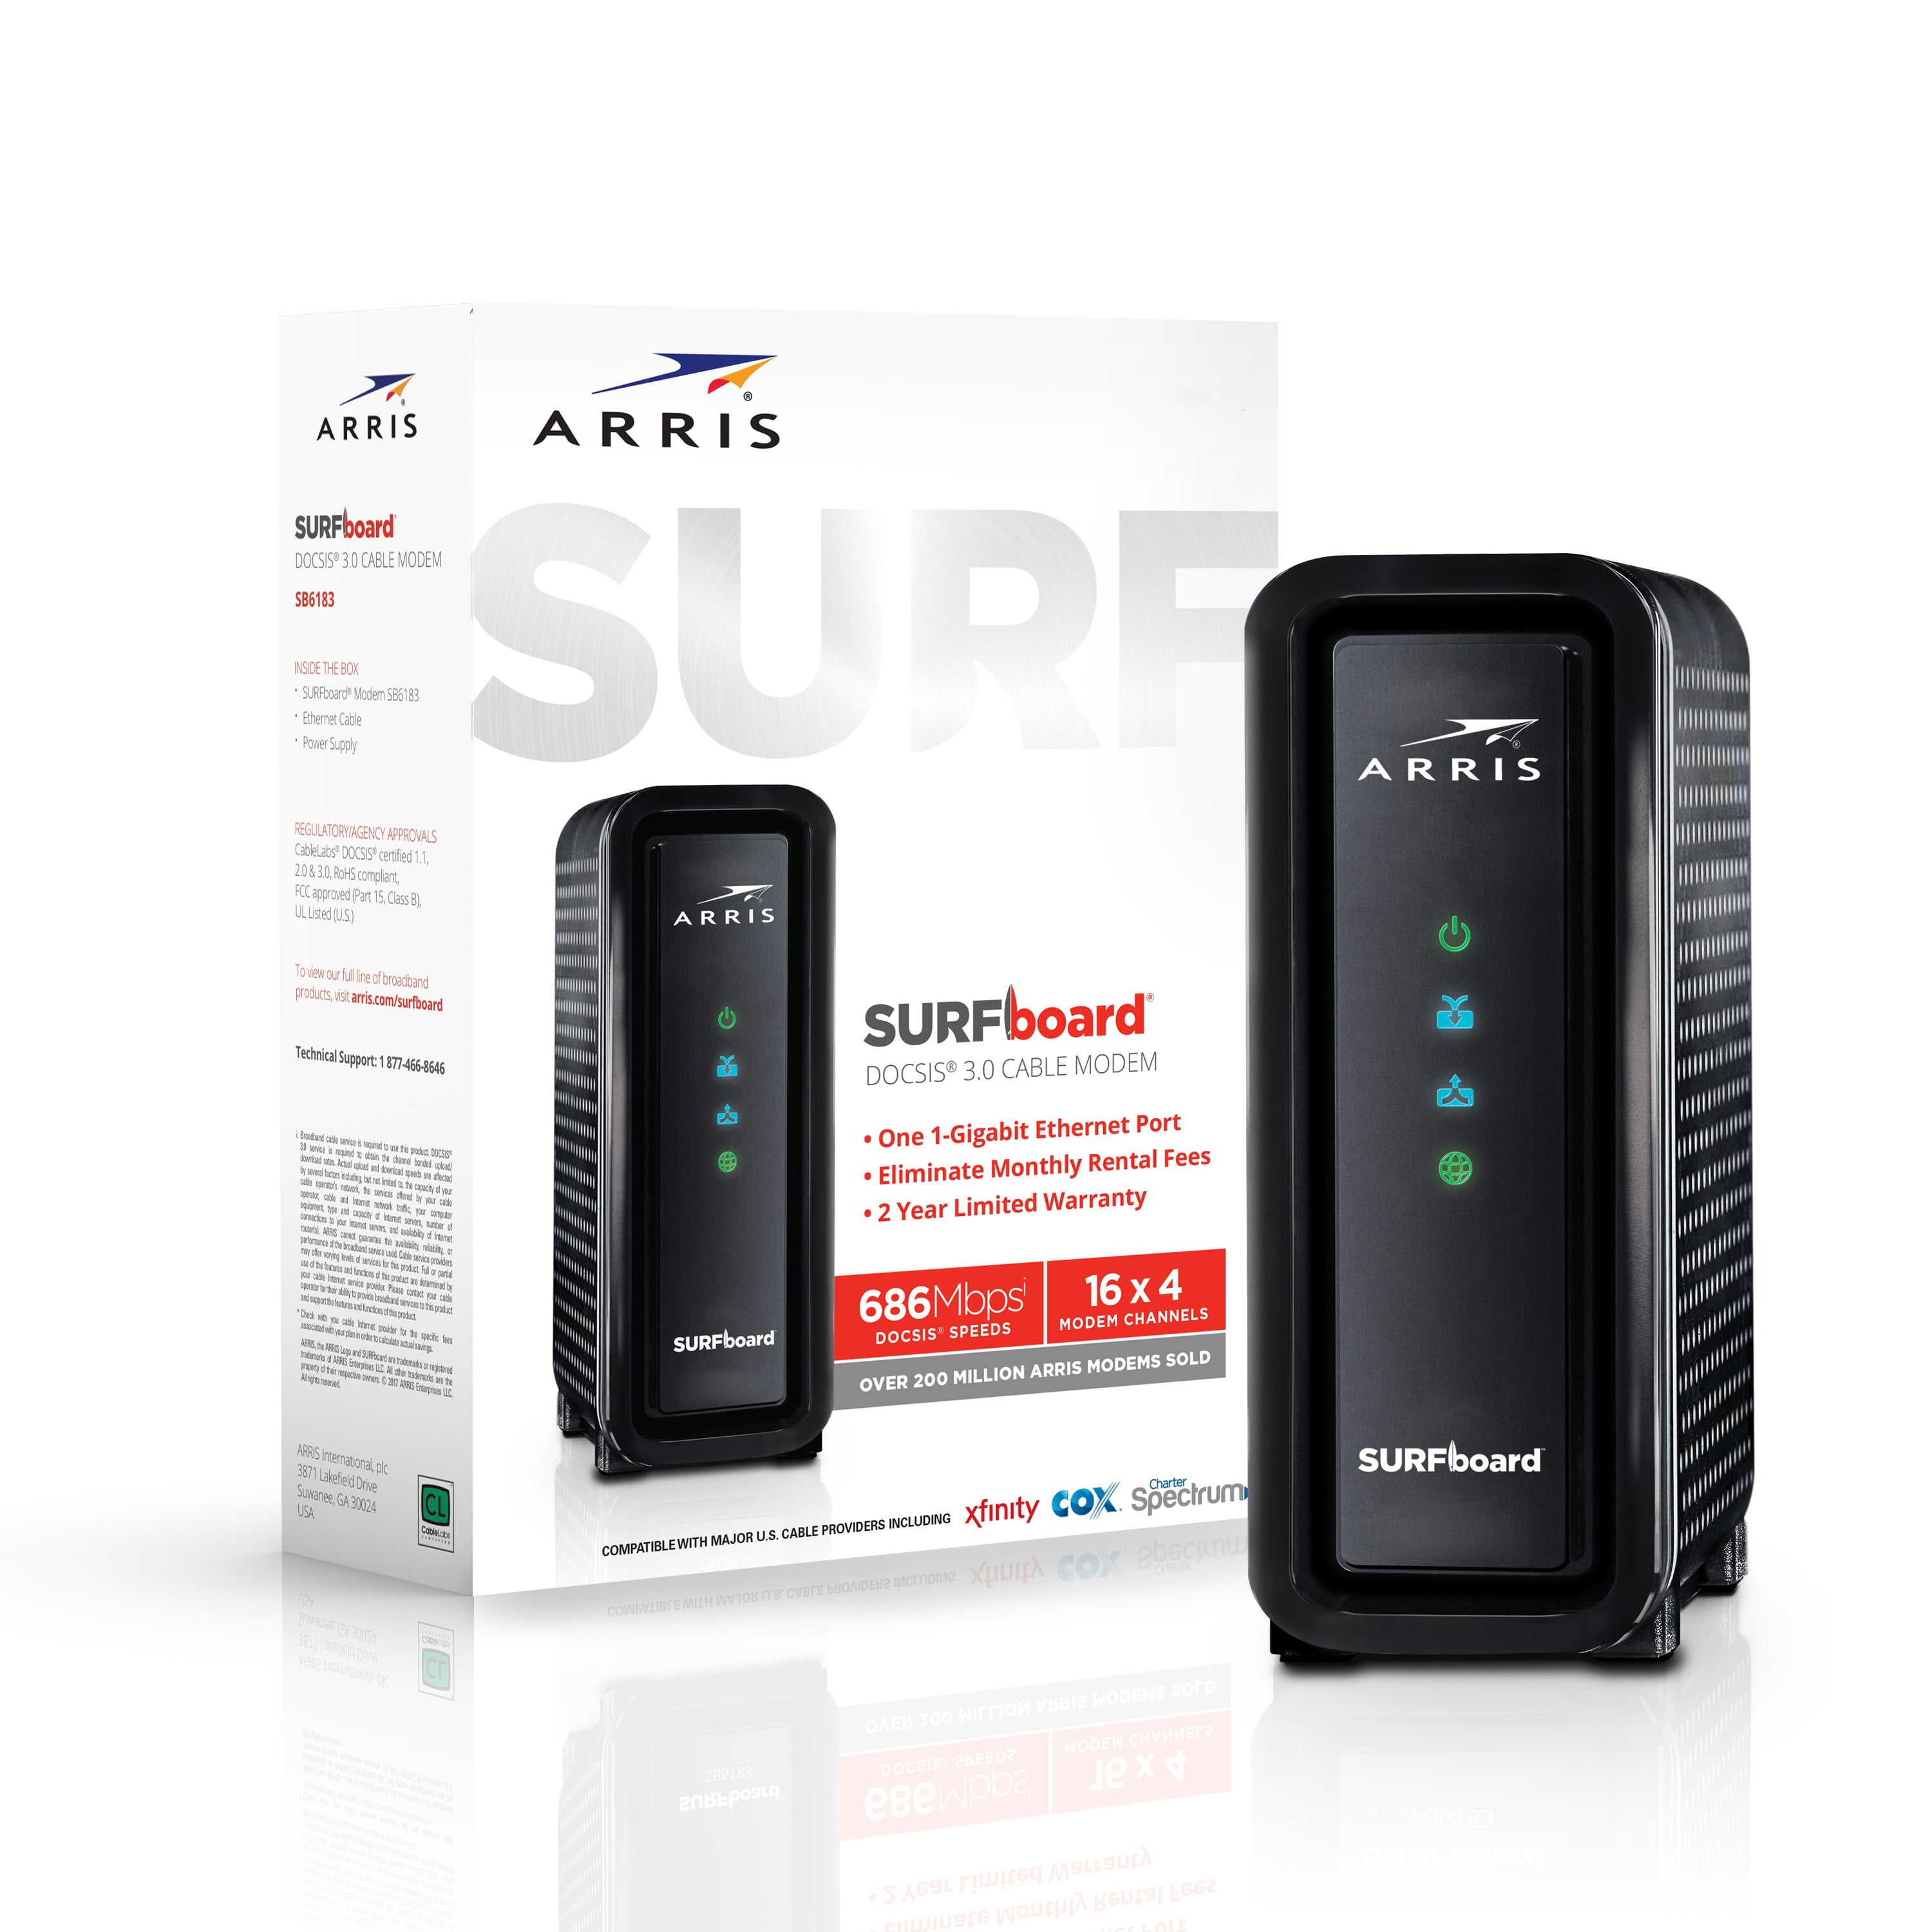 Arris Surfboard 16x4 Docsis 3 0 Cable Modem Approved For Xfinity Comcast Cox Charter And Most Other Cable Internet Providers For Plans Up To 300 Mbps Walmart Com Walmart Com